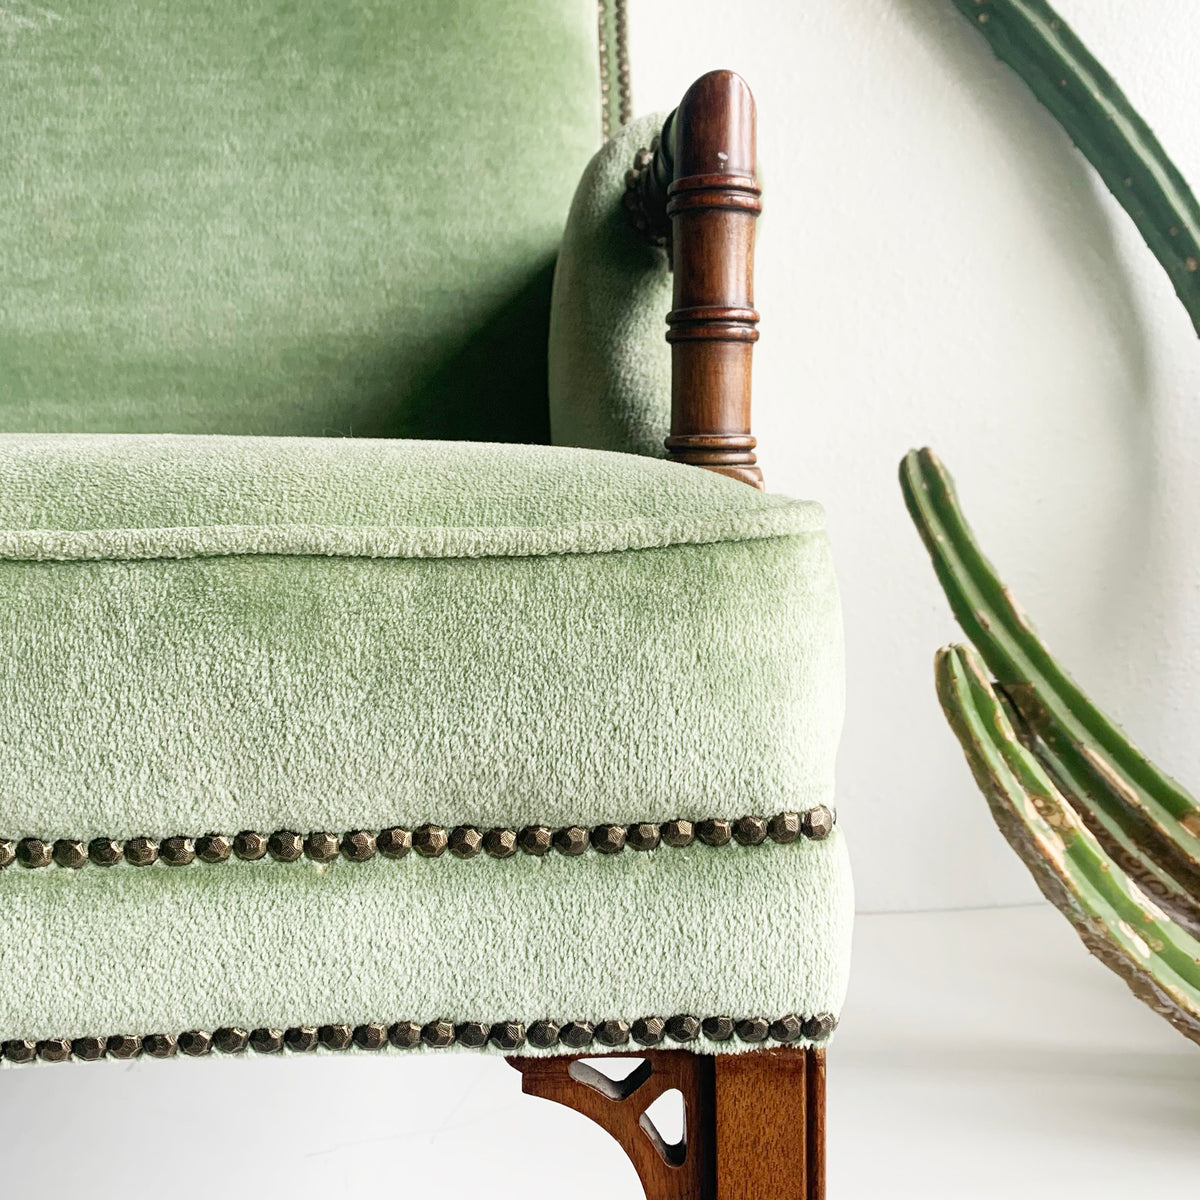 Antique Minty Green Plush Arm Chair